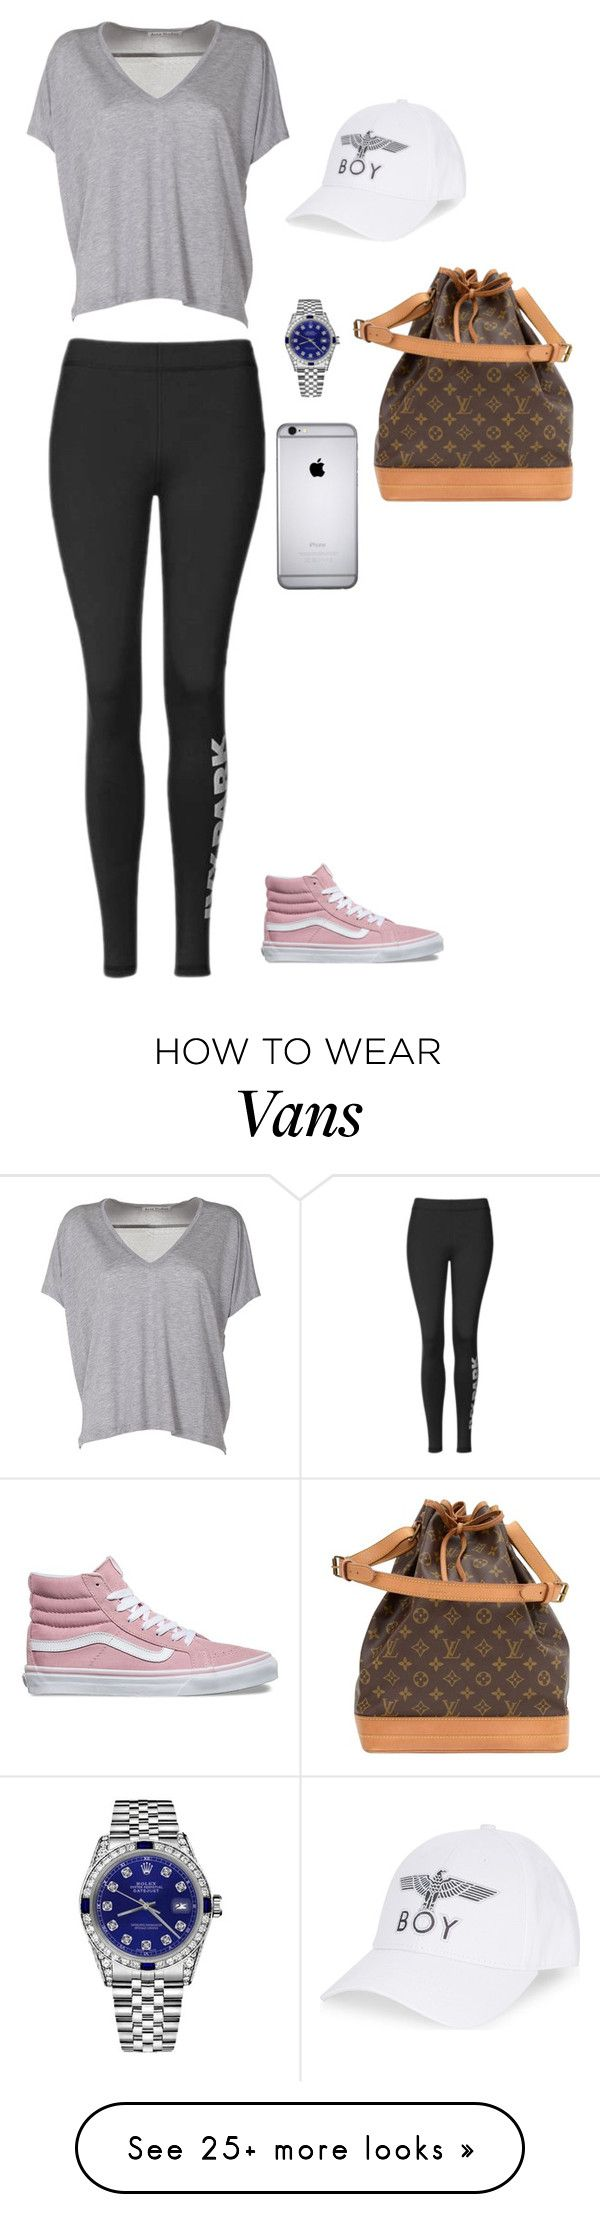 """"" by littlemix009 on Polyvore featuring Topshop, Acne Studios, Vans, Rolex, BOY London and Louis Vuitton"